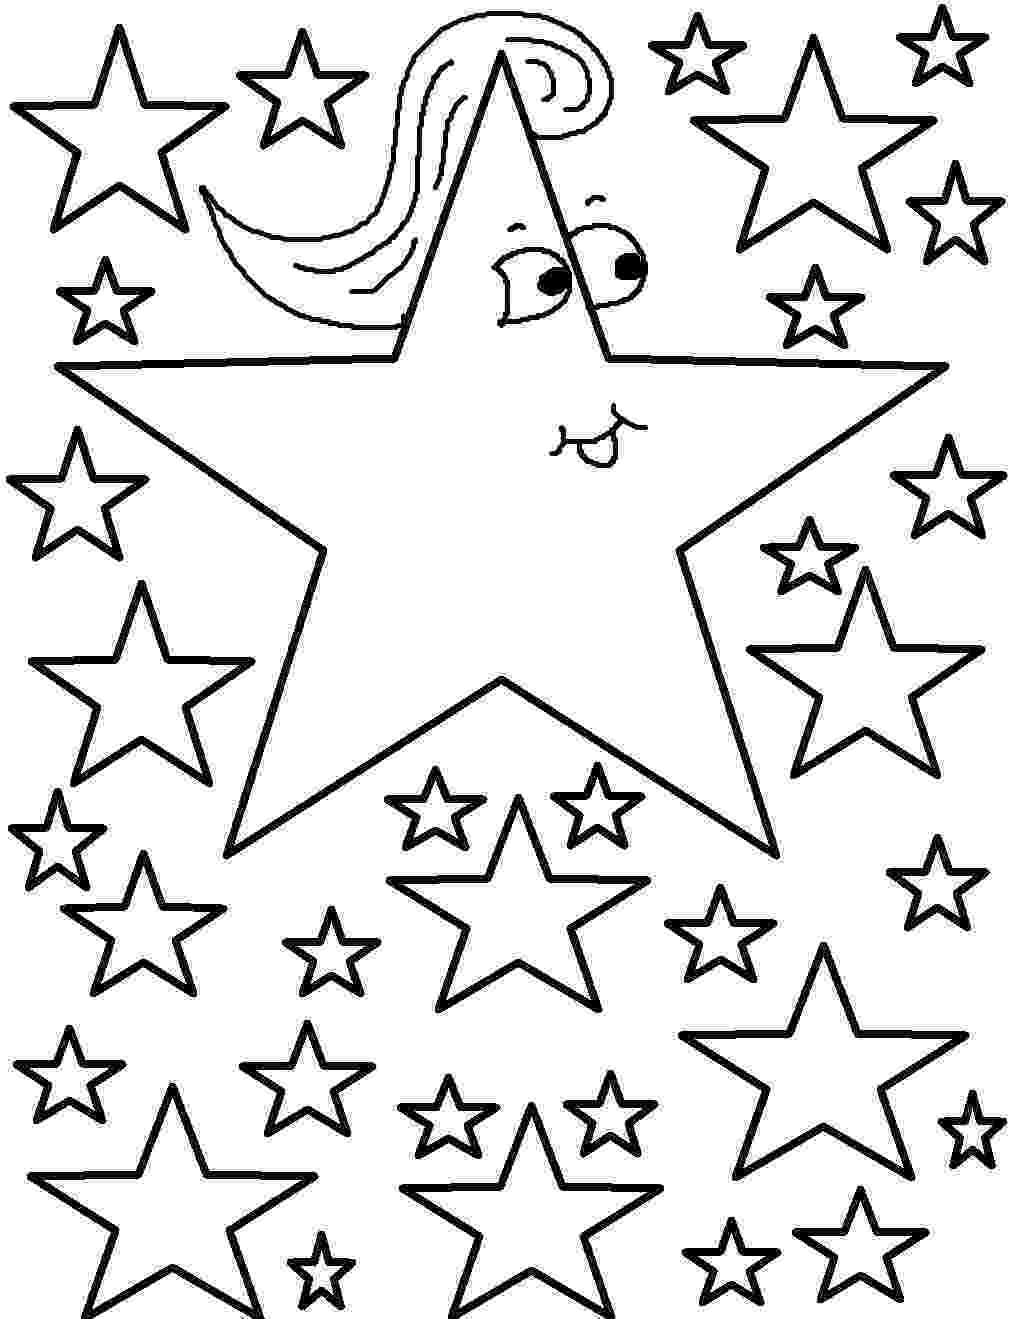 coloring stars free printable star coloring pages for kids stars coloring